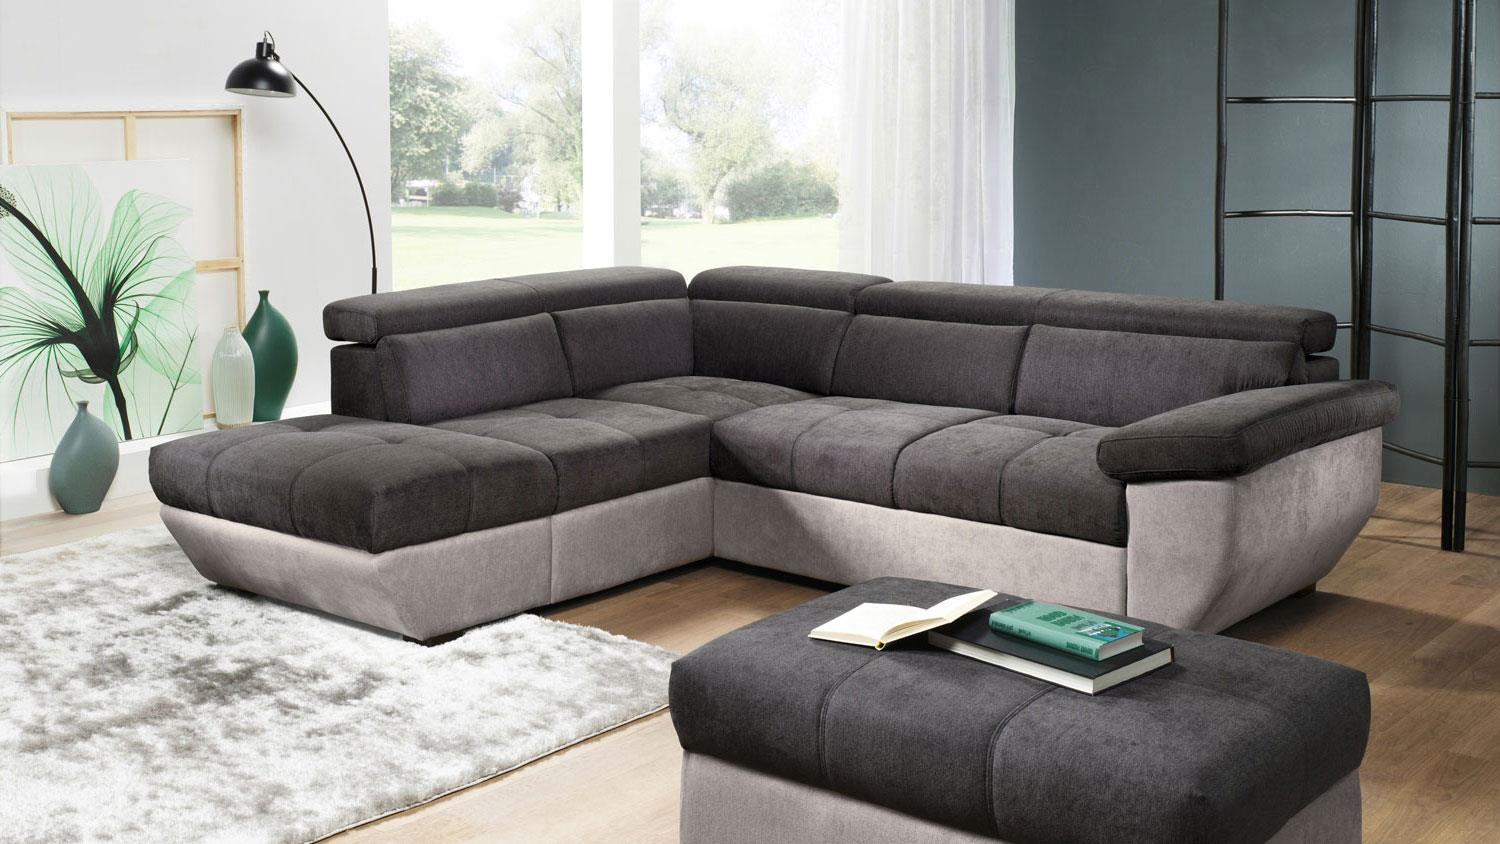 ecksofa speedway stoff grau braun inkl nosagfederung 262x224 cm. Black Bedroom Furniture Sets. Home Design Ideas